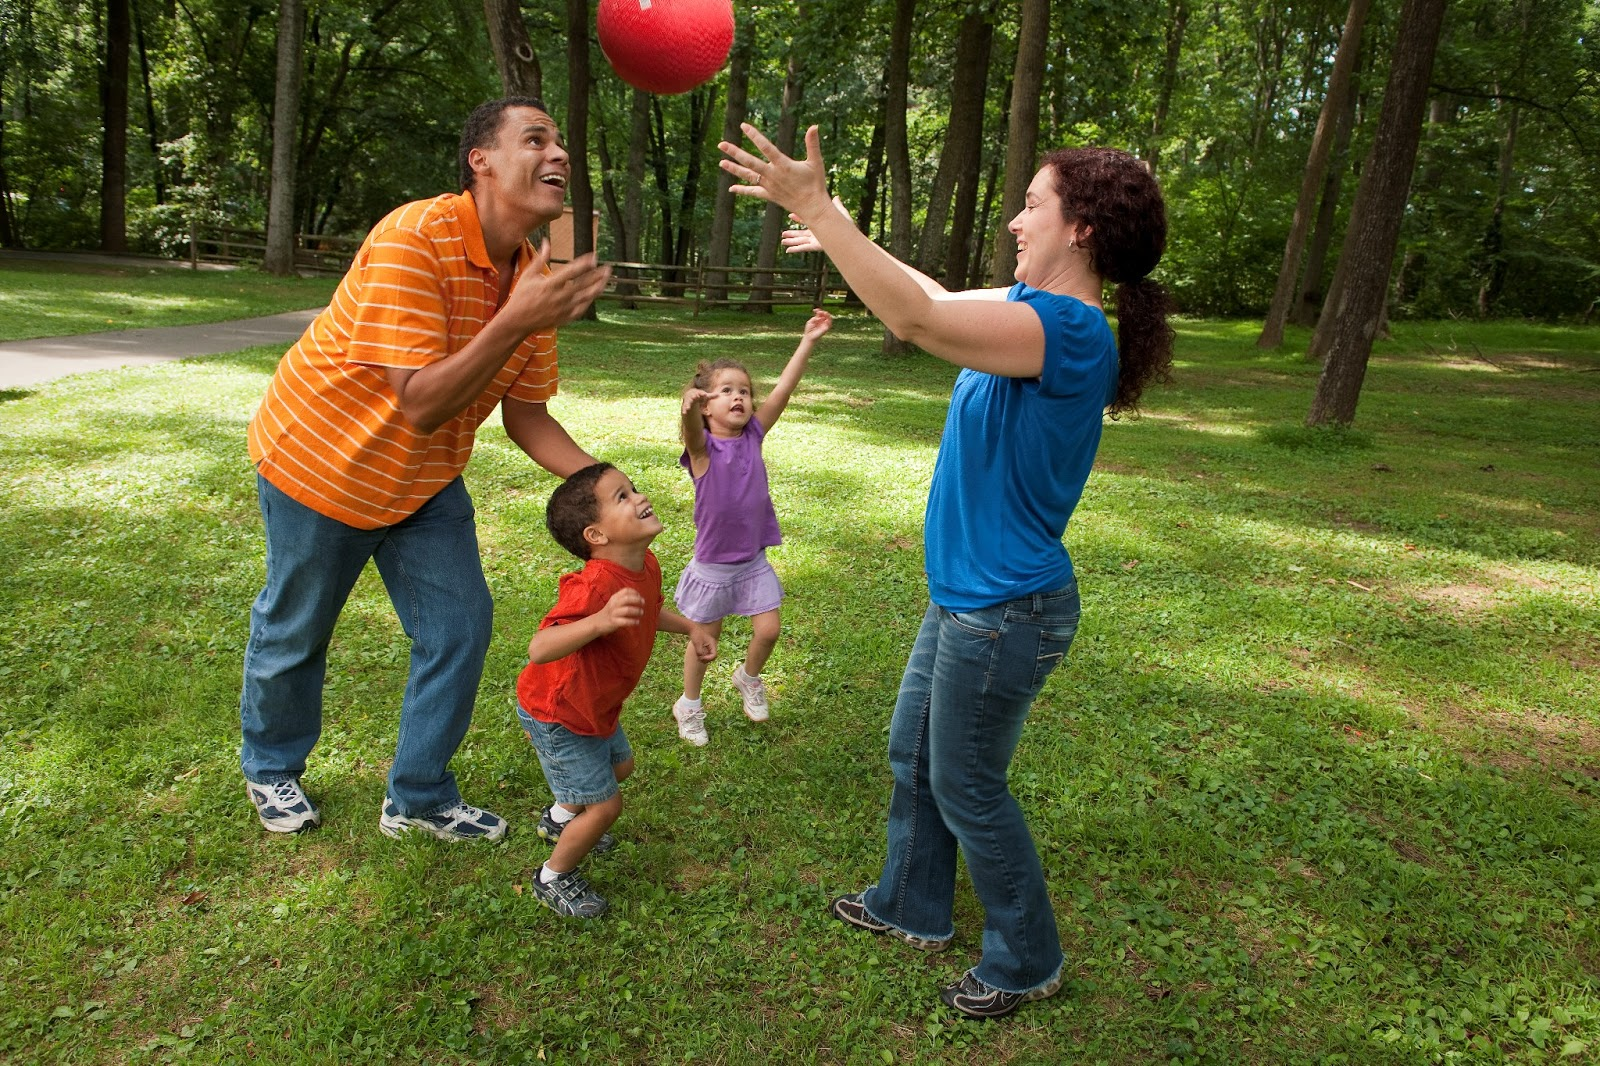 Kids Playing Outside This week get outside and playFamily Playing Sports Together